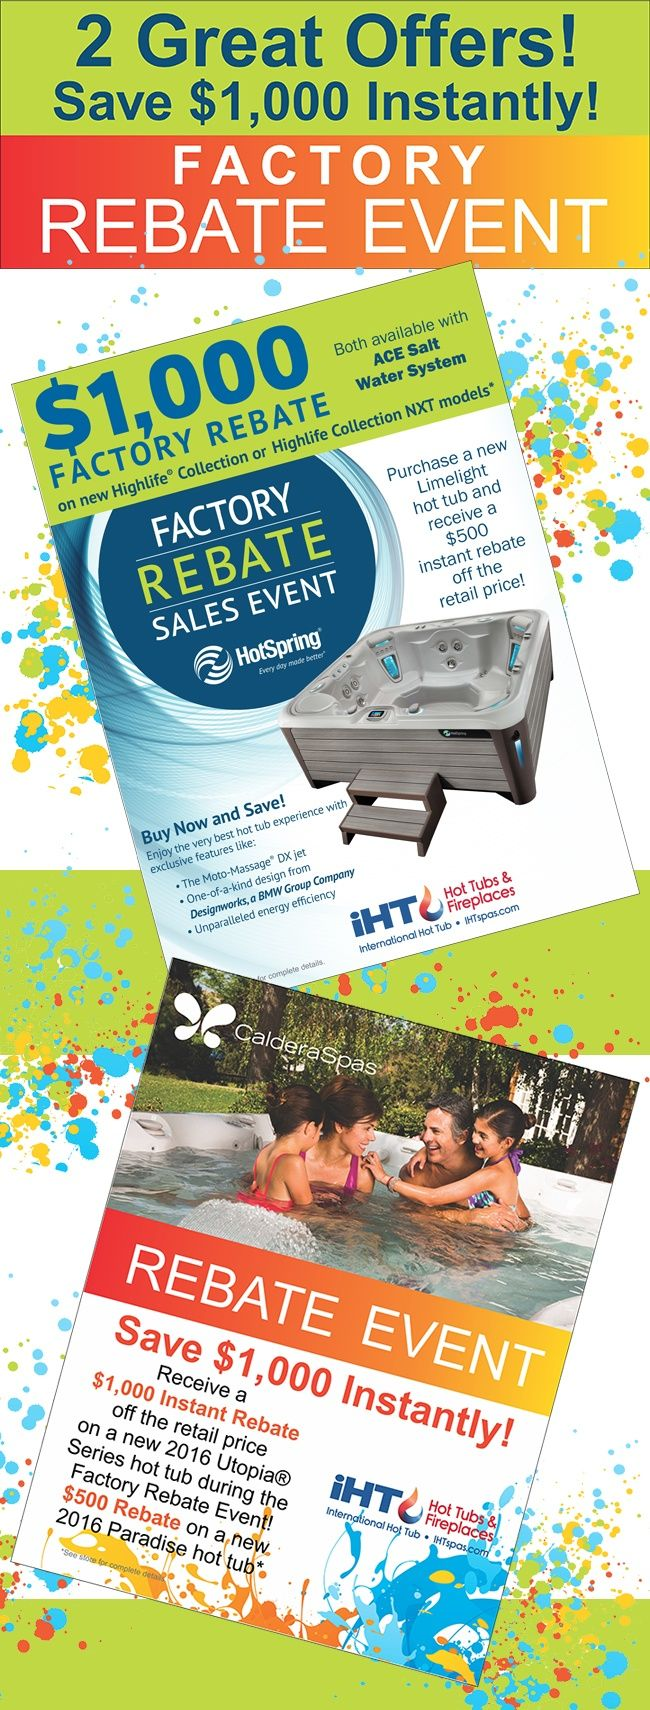 get off all highlife collection models from hot spring spas during the factory